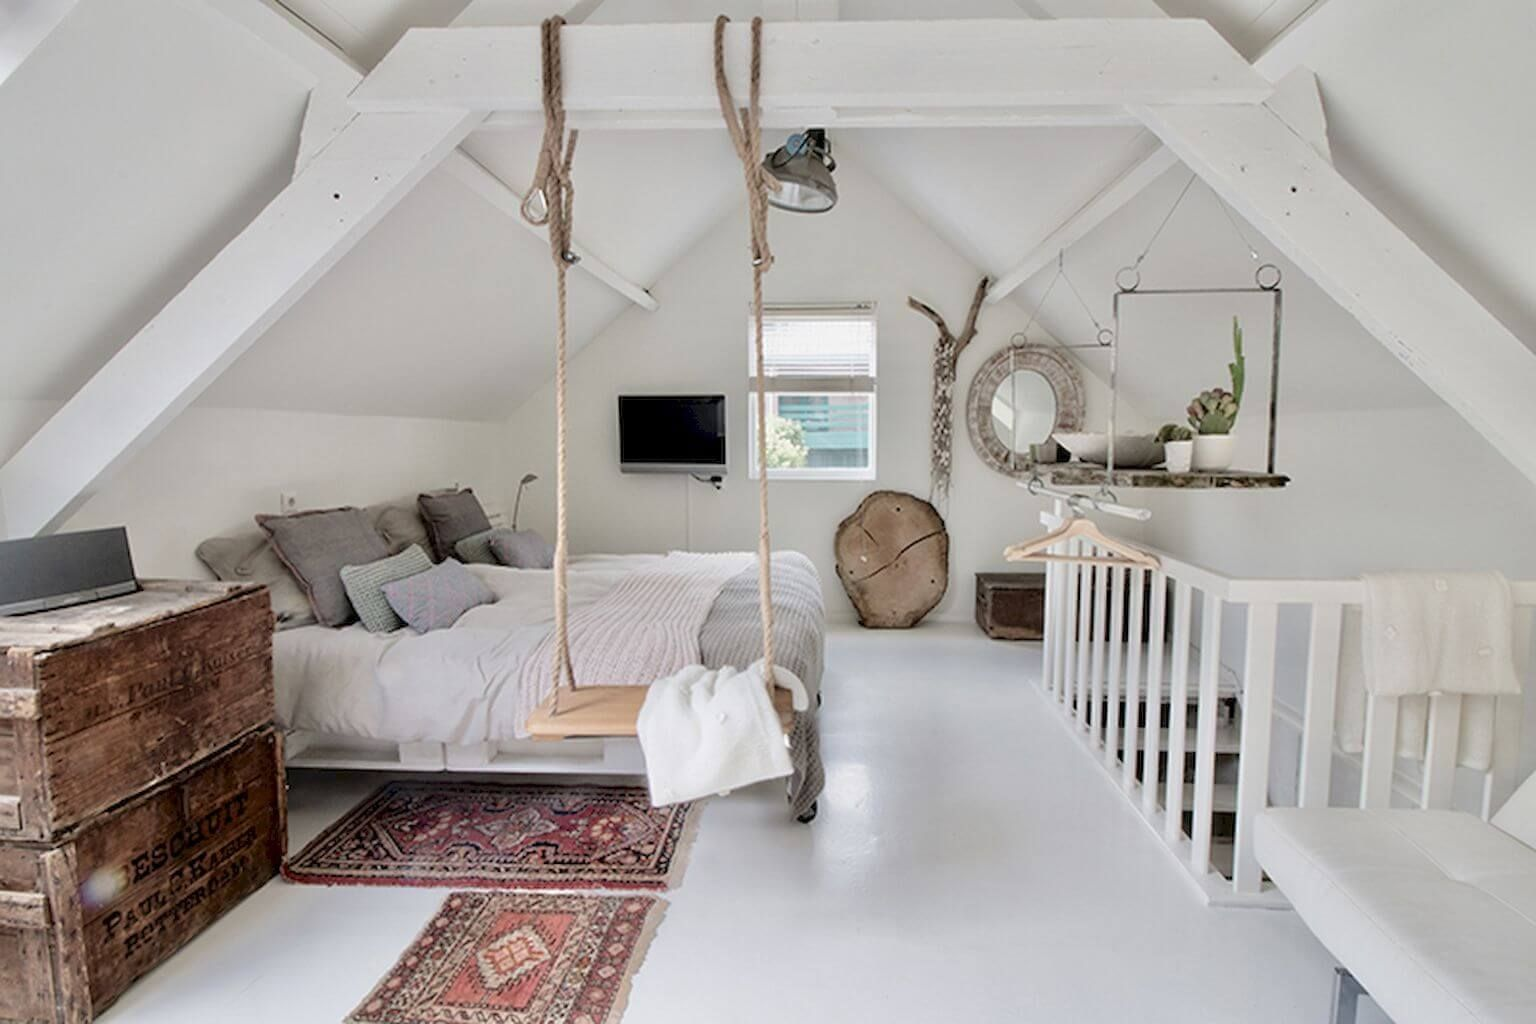 10 Attic Bedroom Ideas 2020 Creative And Awesome Attic Bedroom Designs Attic Remodel Attic Loft